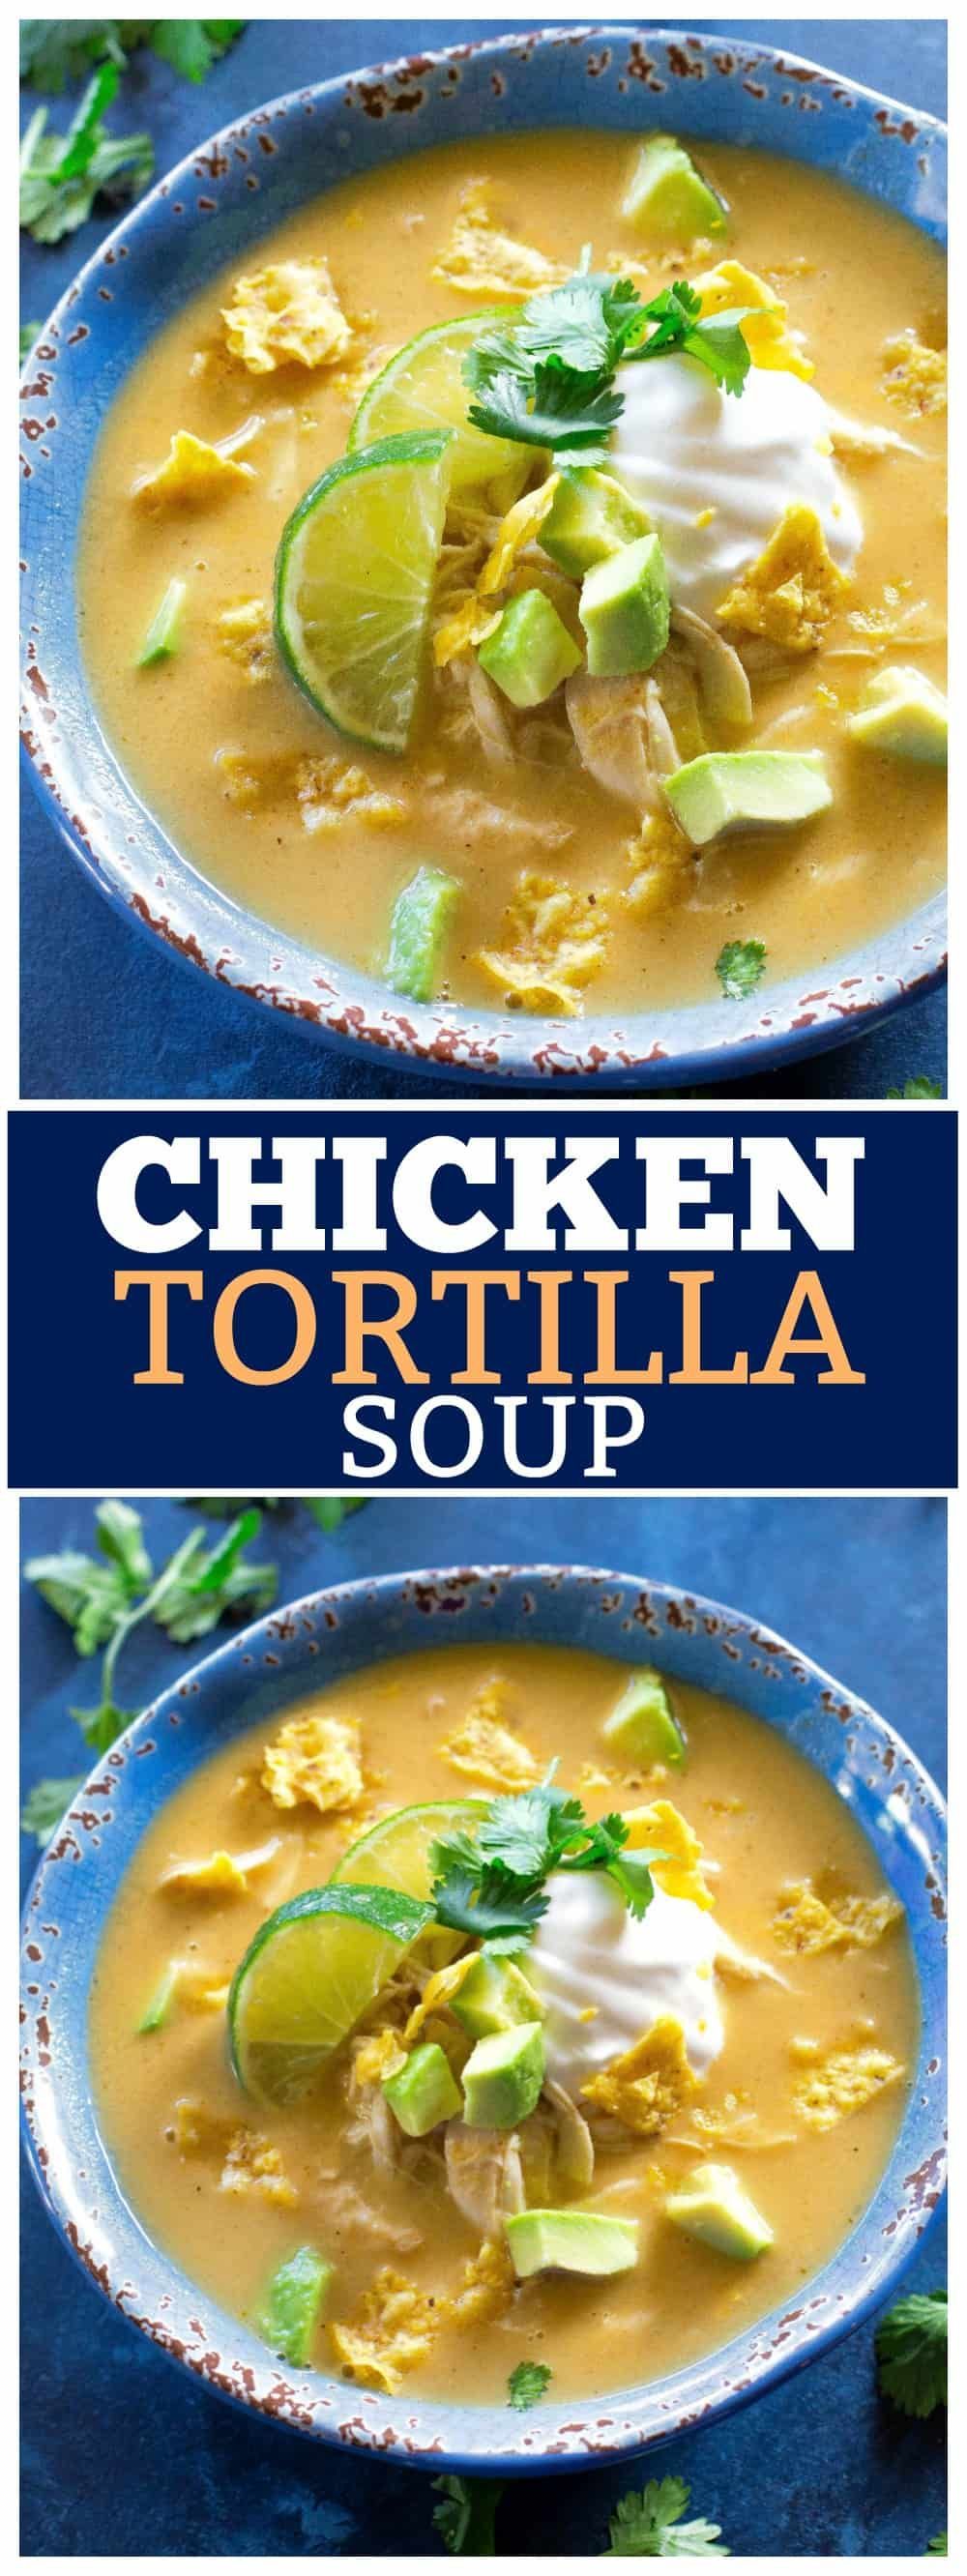 The Best Chicken Tortilla Soup Recipe - The Girl Who Ate Everything